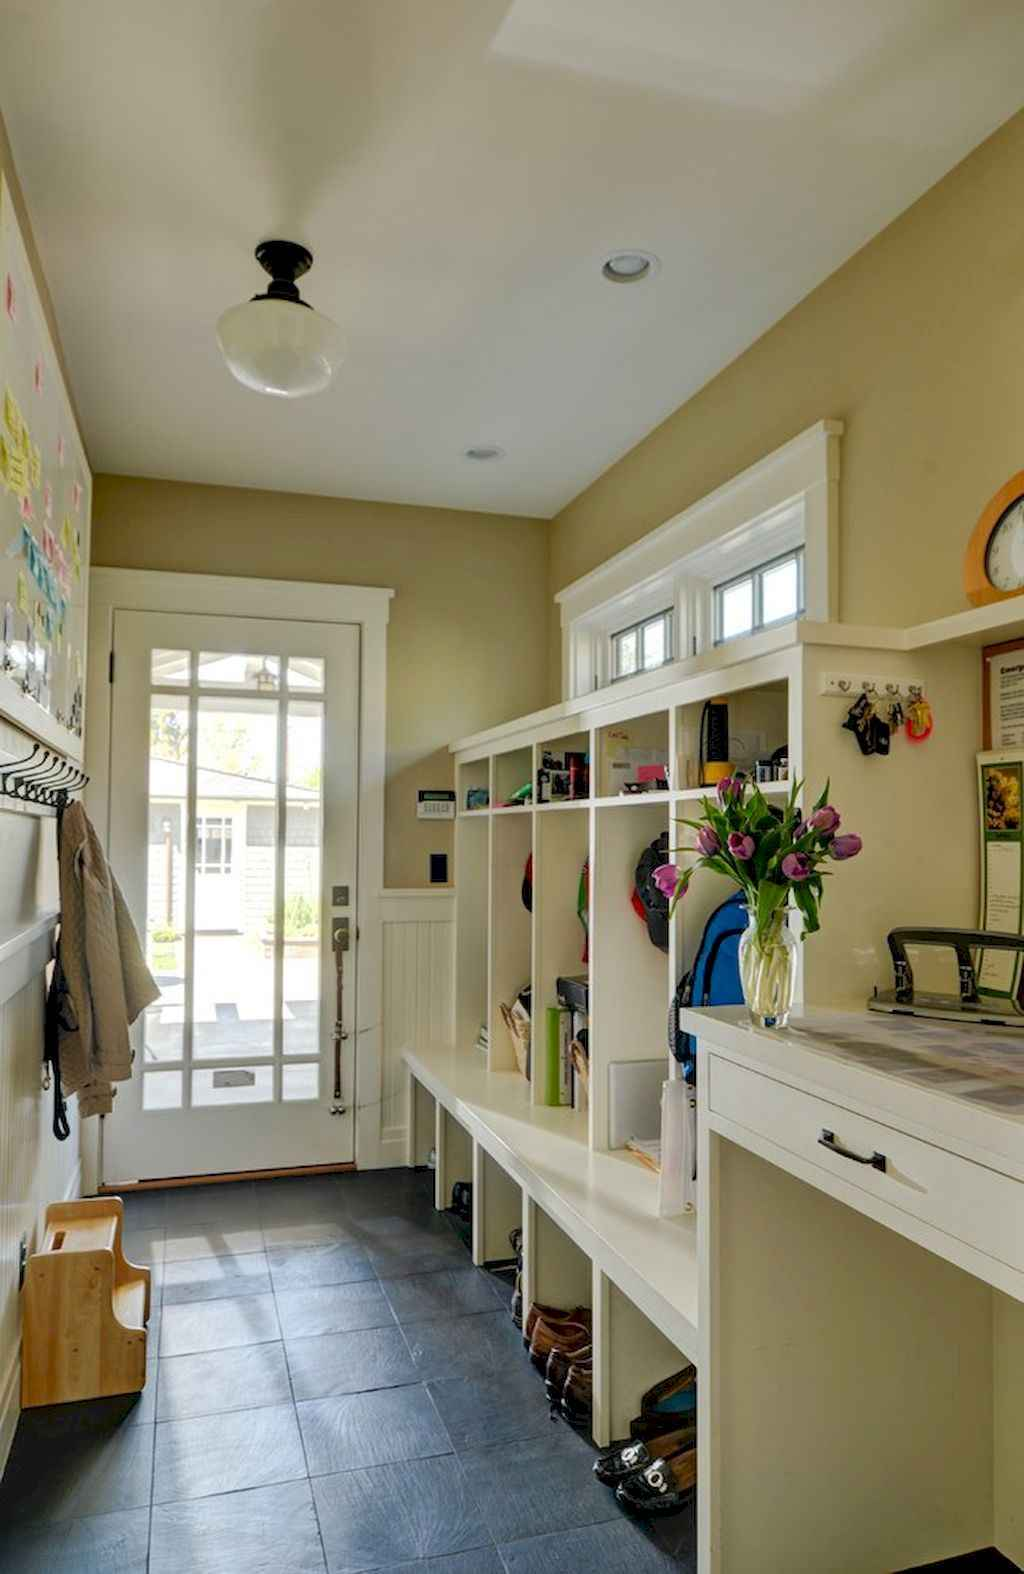 65 Cool Mudroom Design Ideas and Remodel (20)